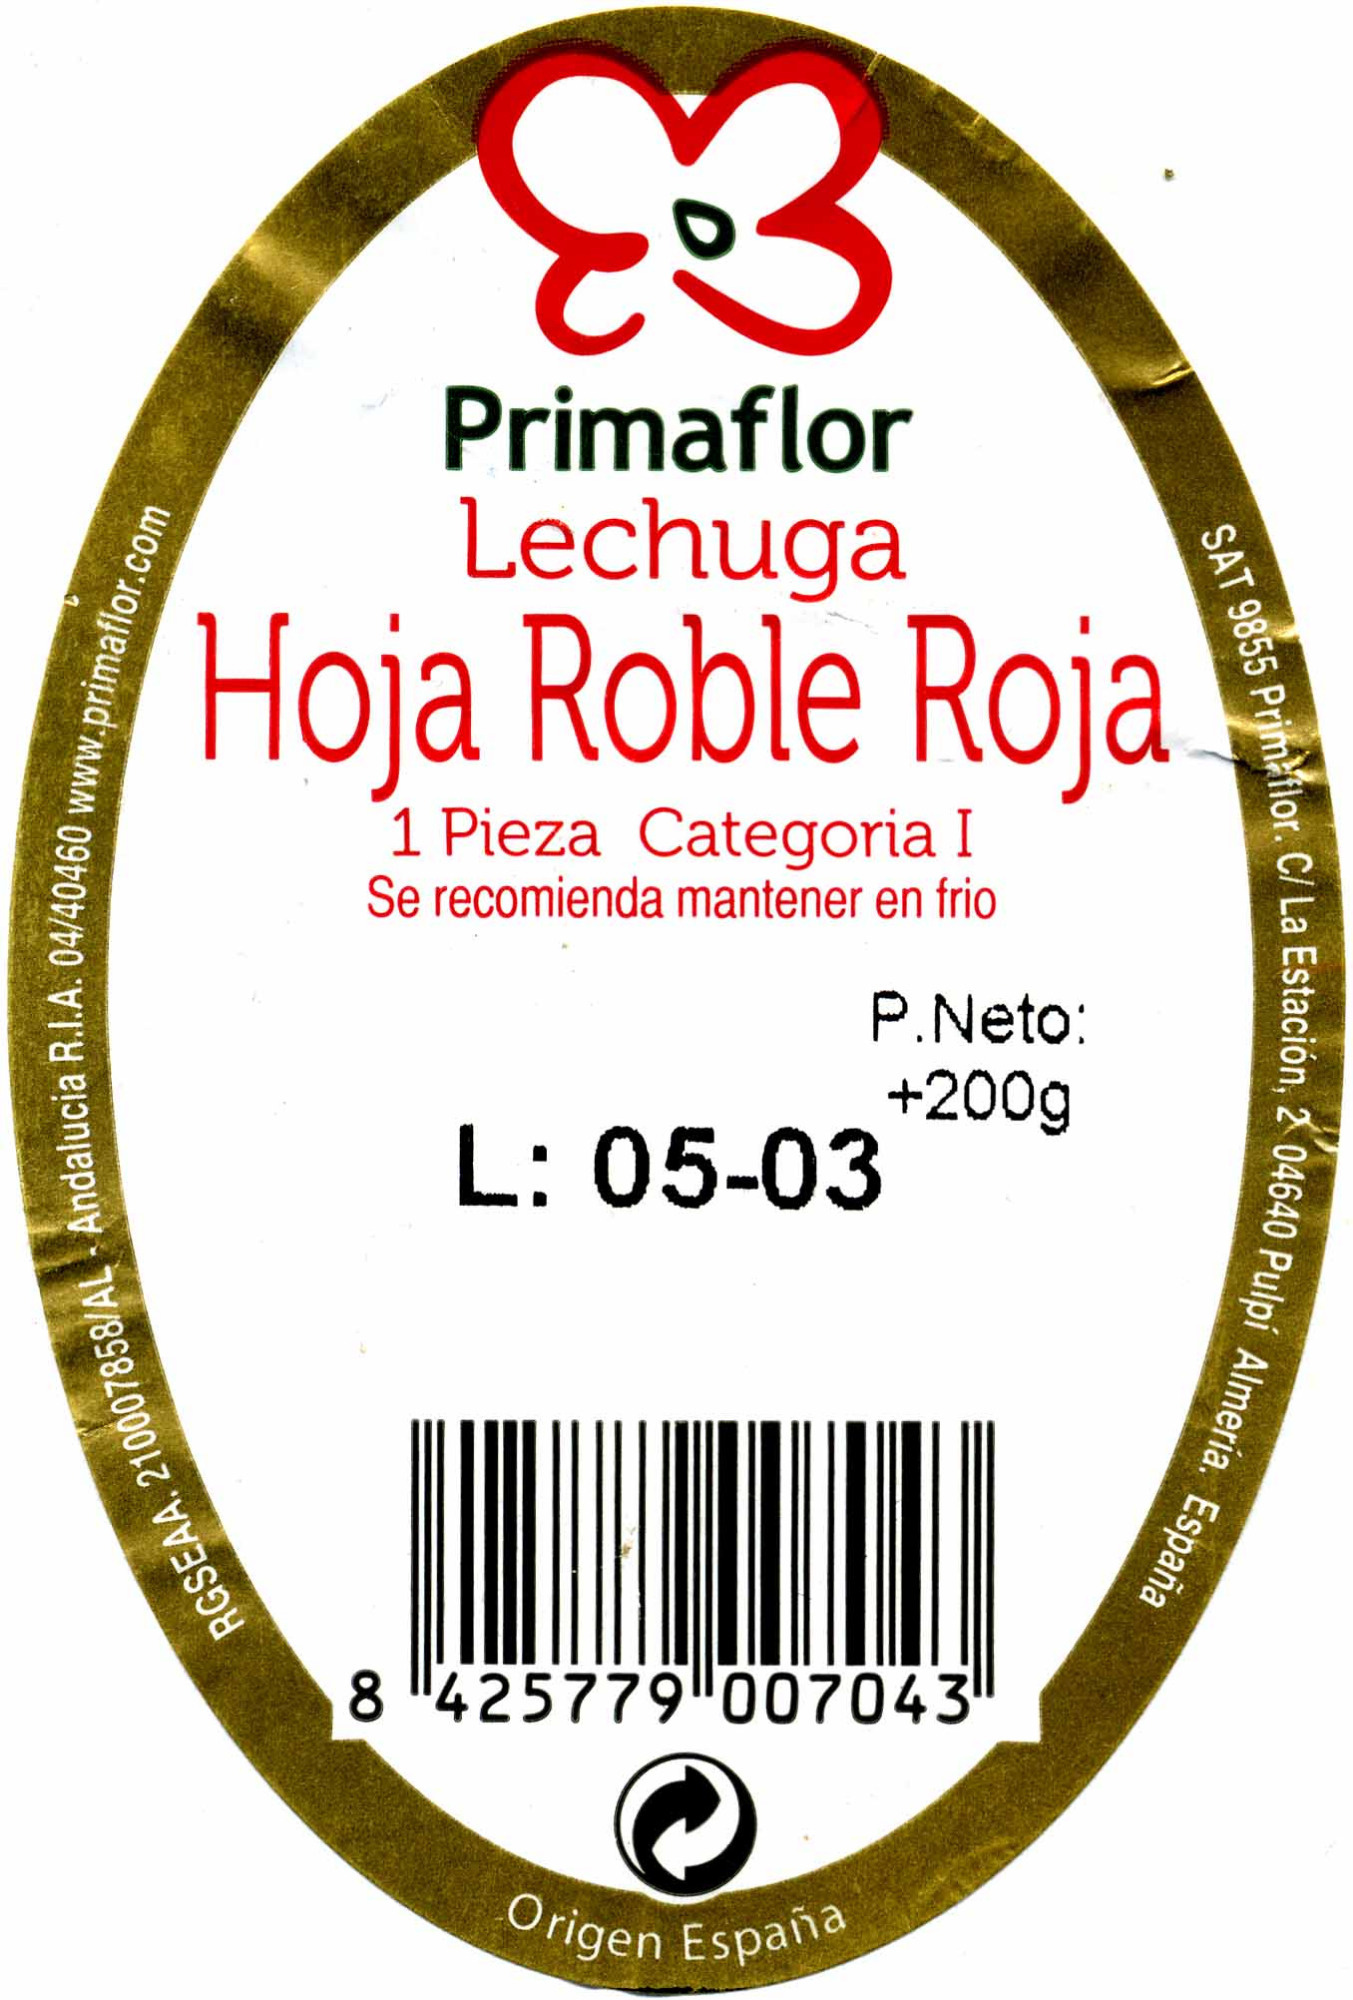 Lehuga hoja de roble - Ingredientes - es